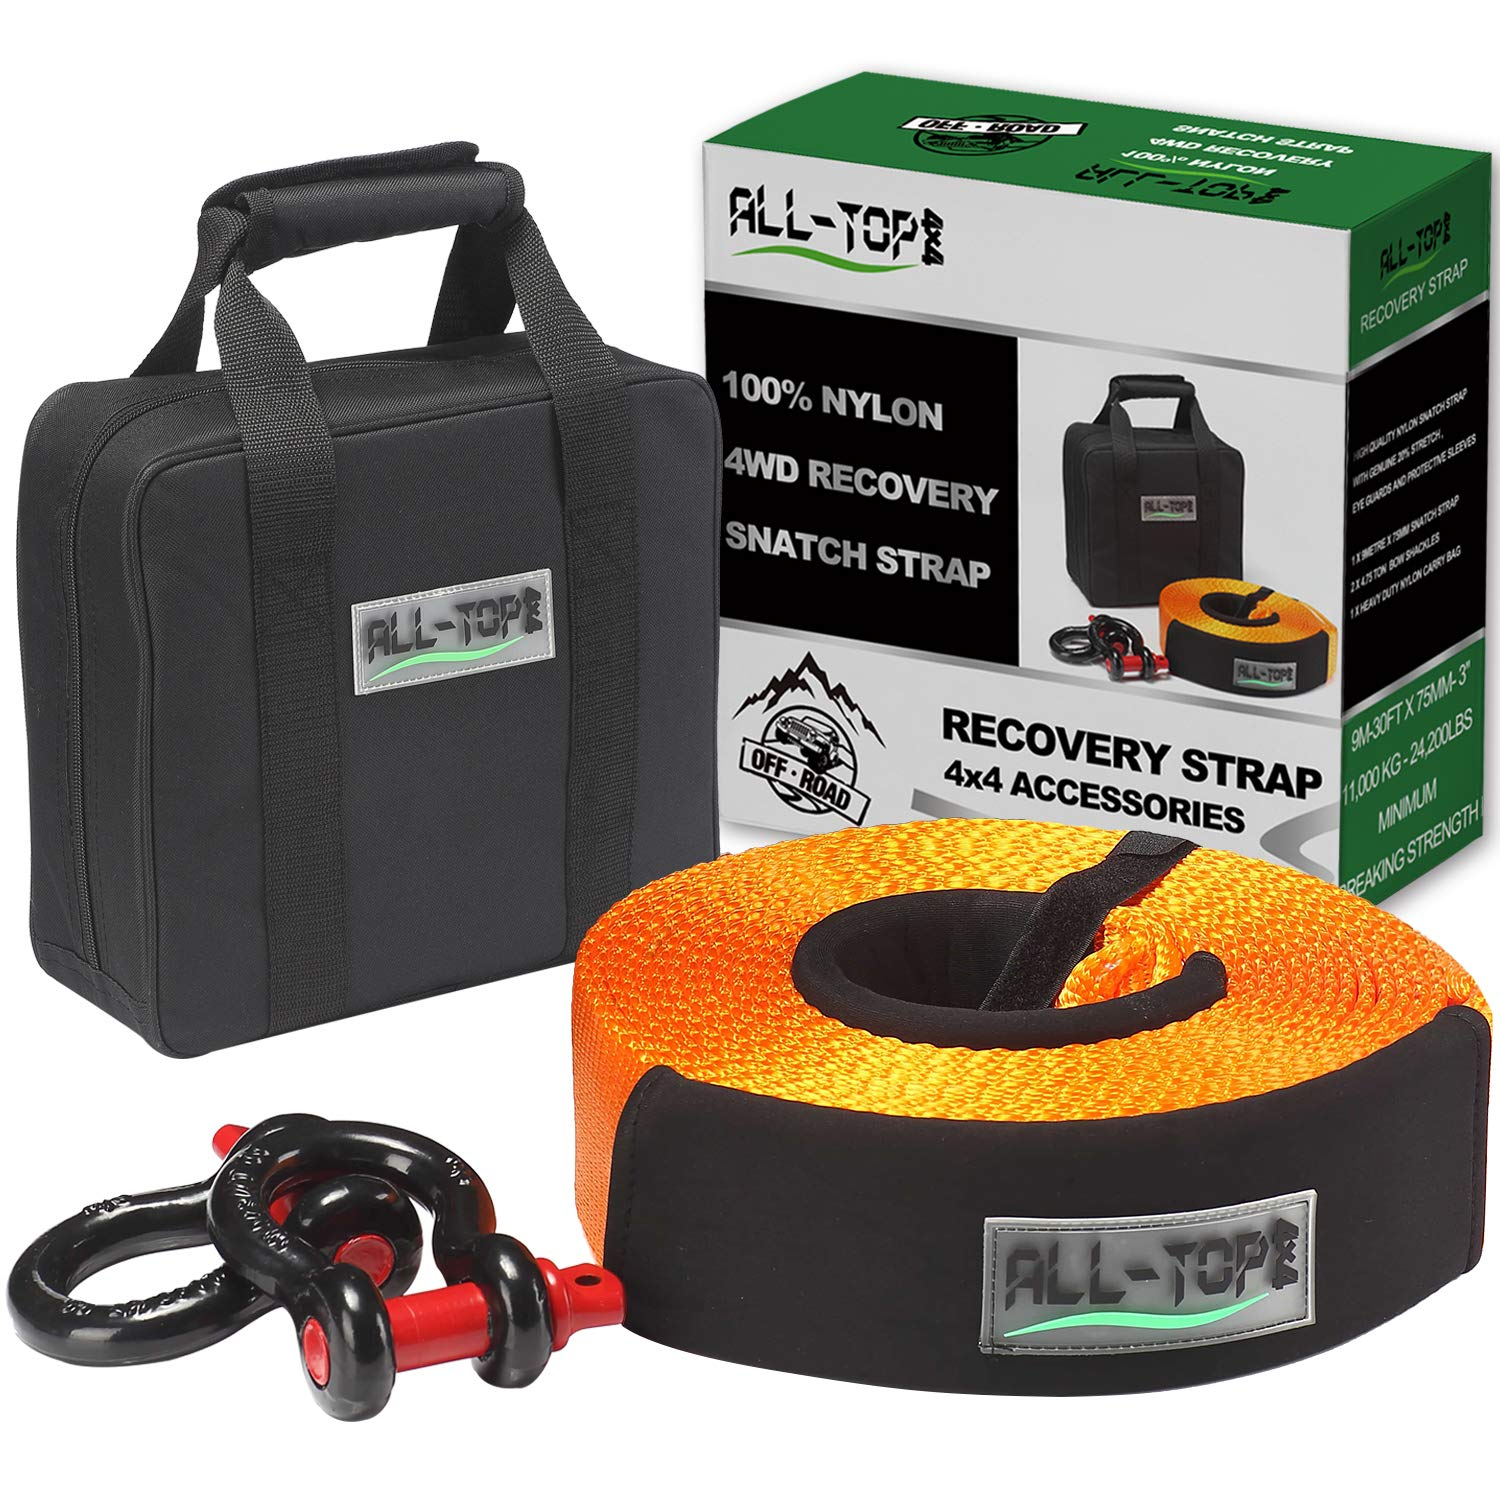 ALL-TOP Nylon Heavy Duty Tow Strap Recovery Strap Kit : 3 inch x 30 ft (32.000 lbs) 100% Nylon and 22% Elongation Snatch Strap + 3/4 Heavy Duty D Ring Shackles (2pcs) + Storage Bag by ALL-TOP